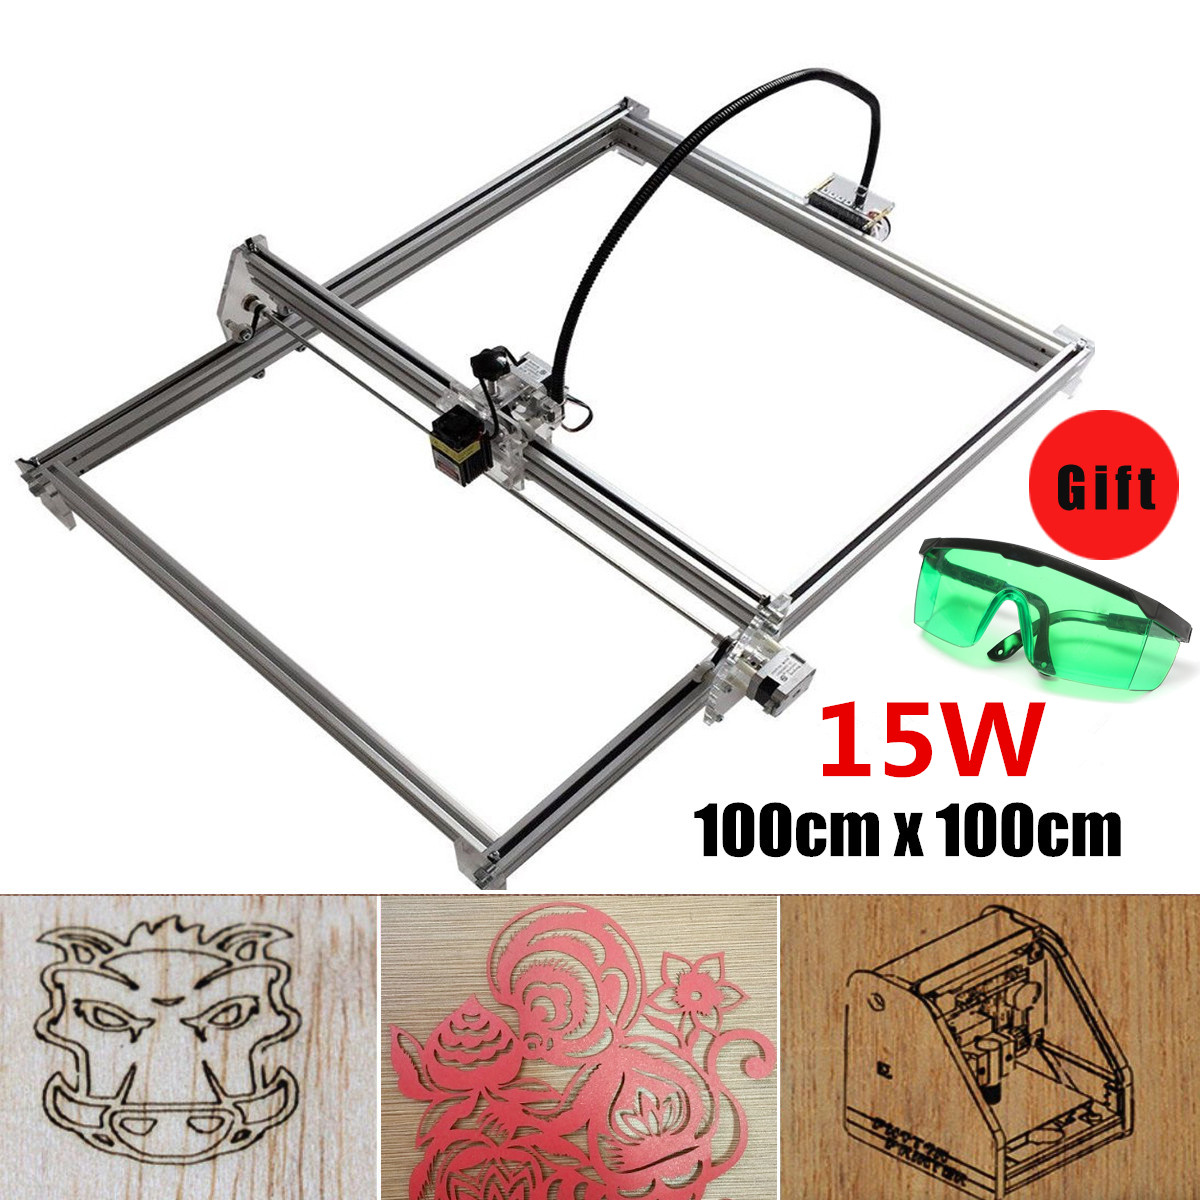 12V 15W 100x100cm DIY Laser Engraving Machine CNC Engraver Marking Machine Printer Wood Router for Printer Cutting and Engraving 10w laser engraver metal laser marking machine cnc router with 140 200mm engraving area for stainless steel aluminum marking